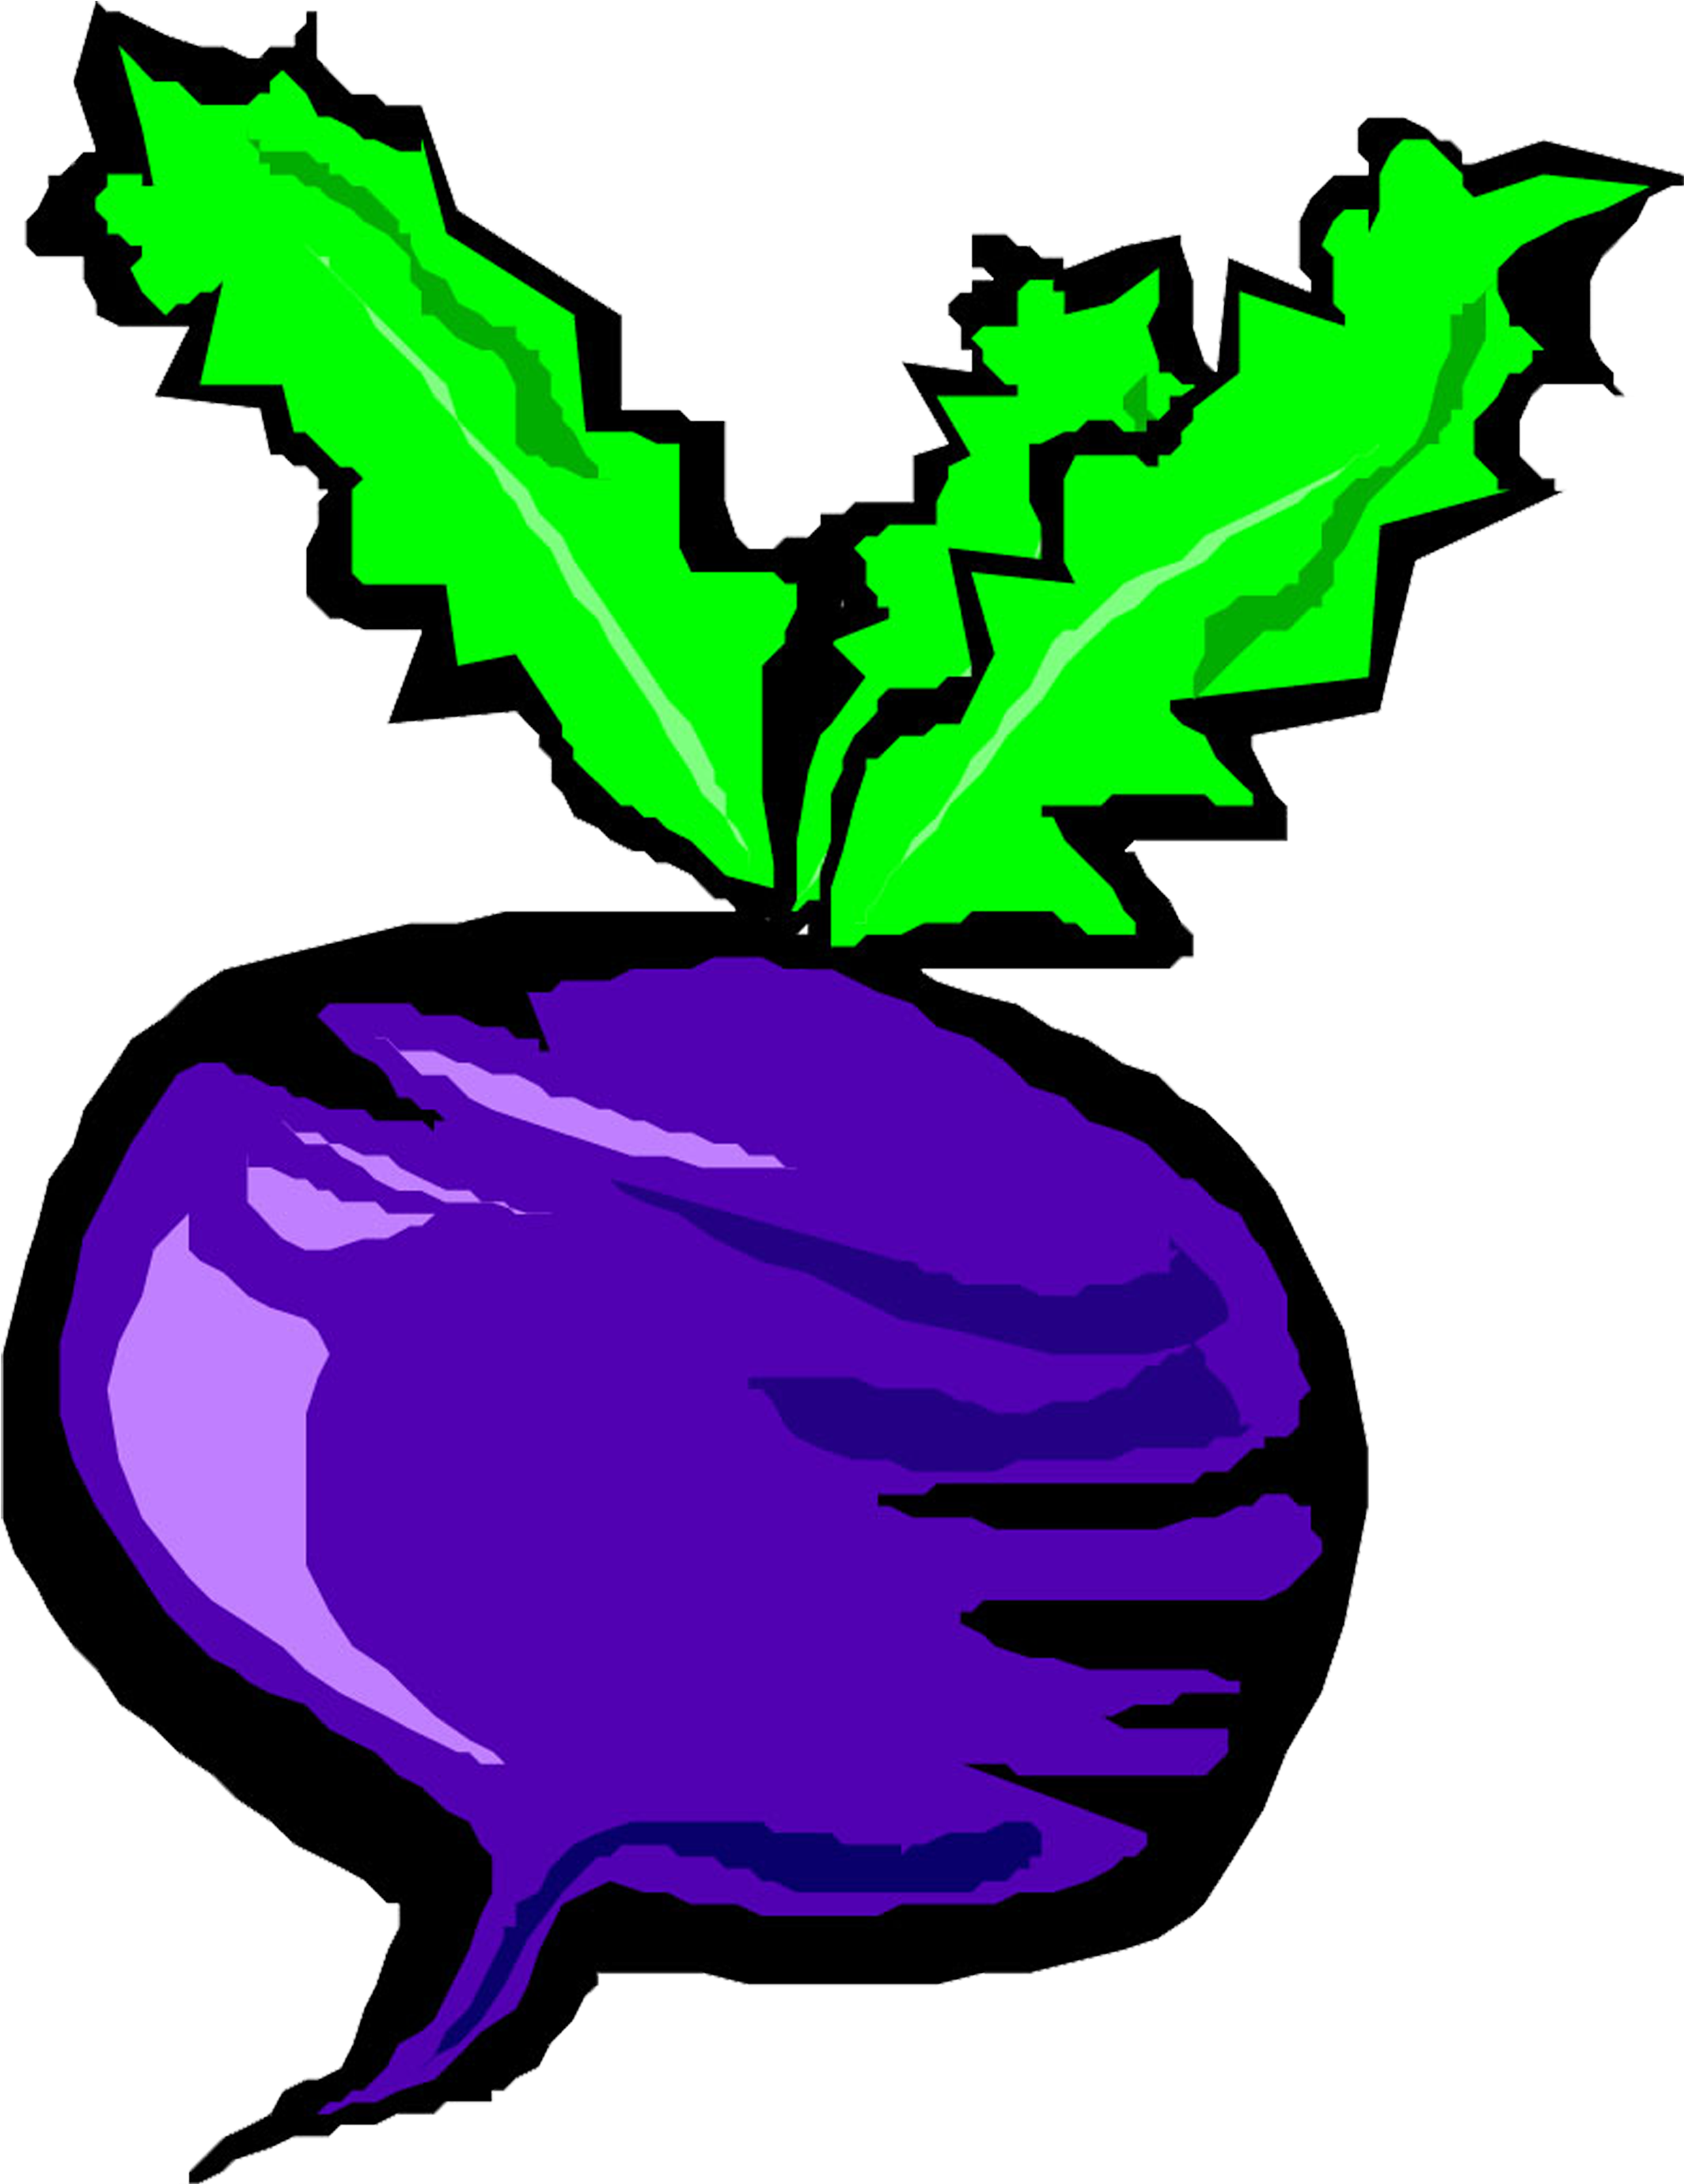 Drawing vegetables egg plant. Download banner free turnip